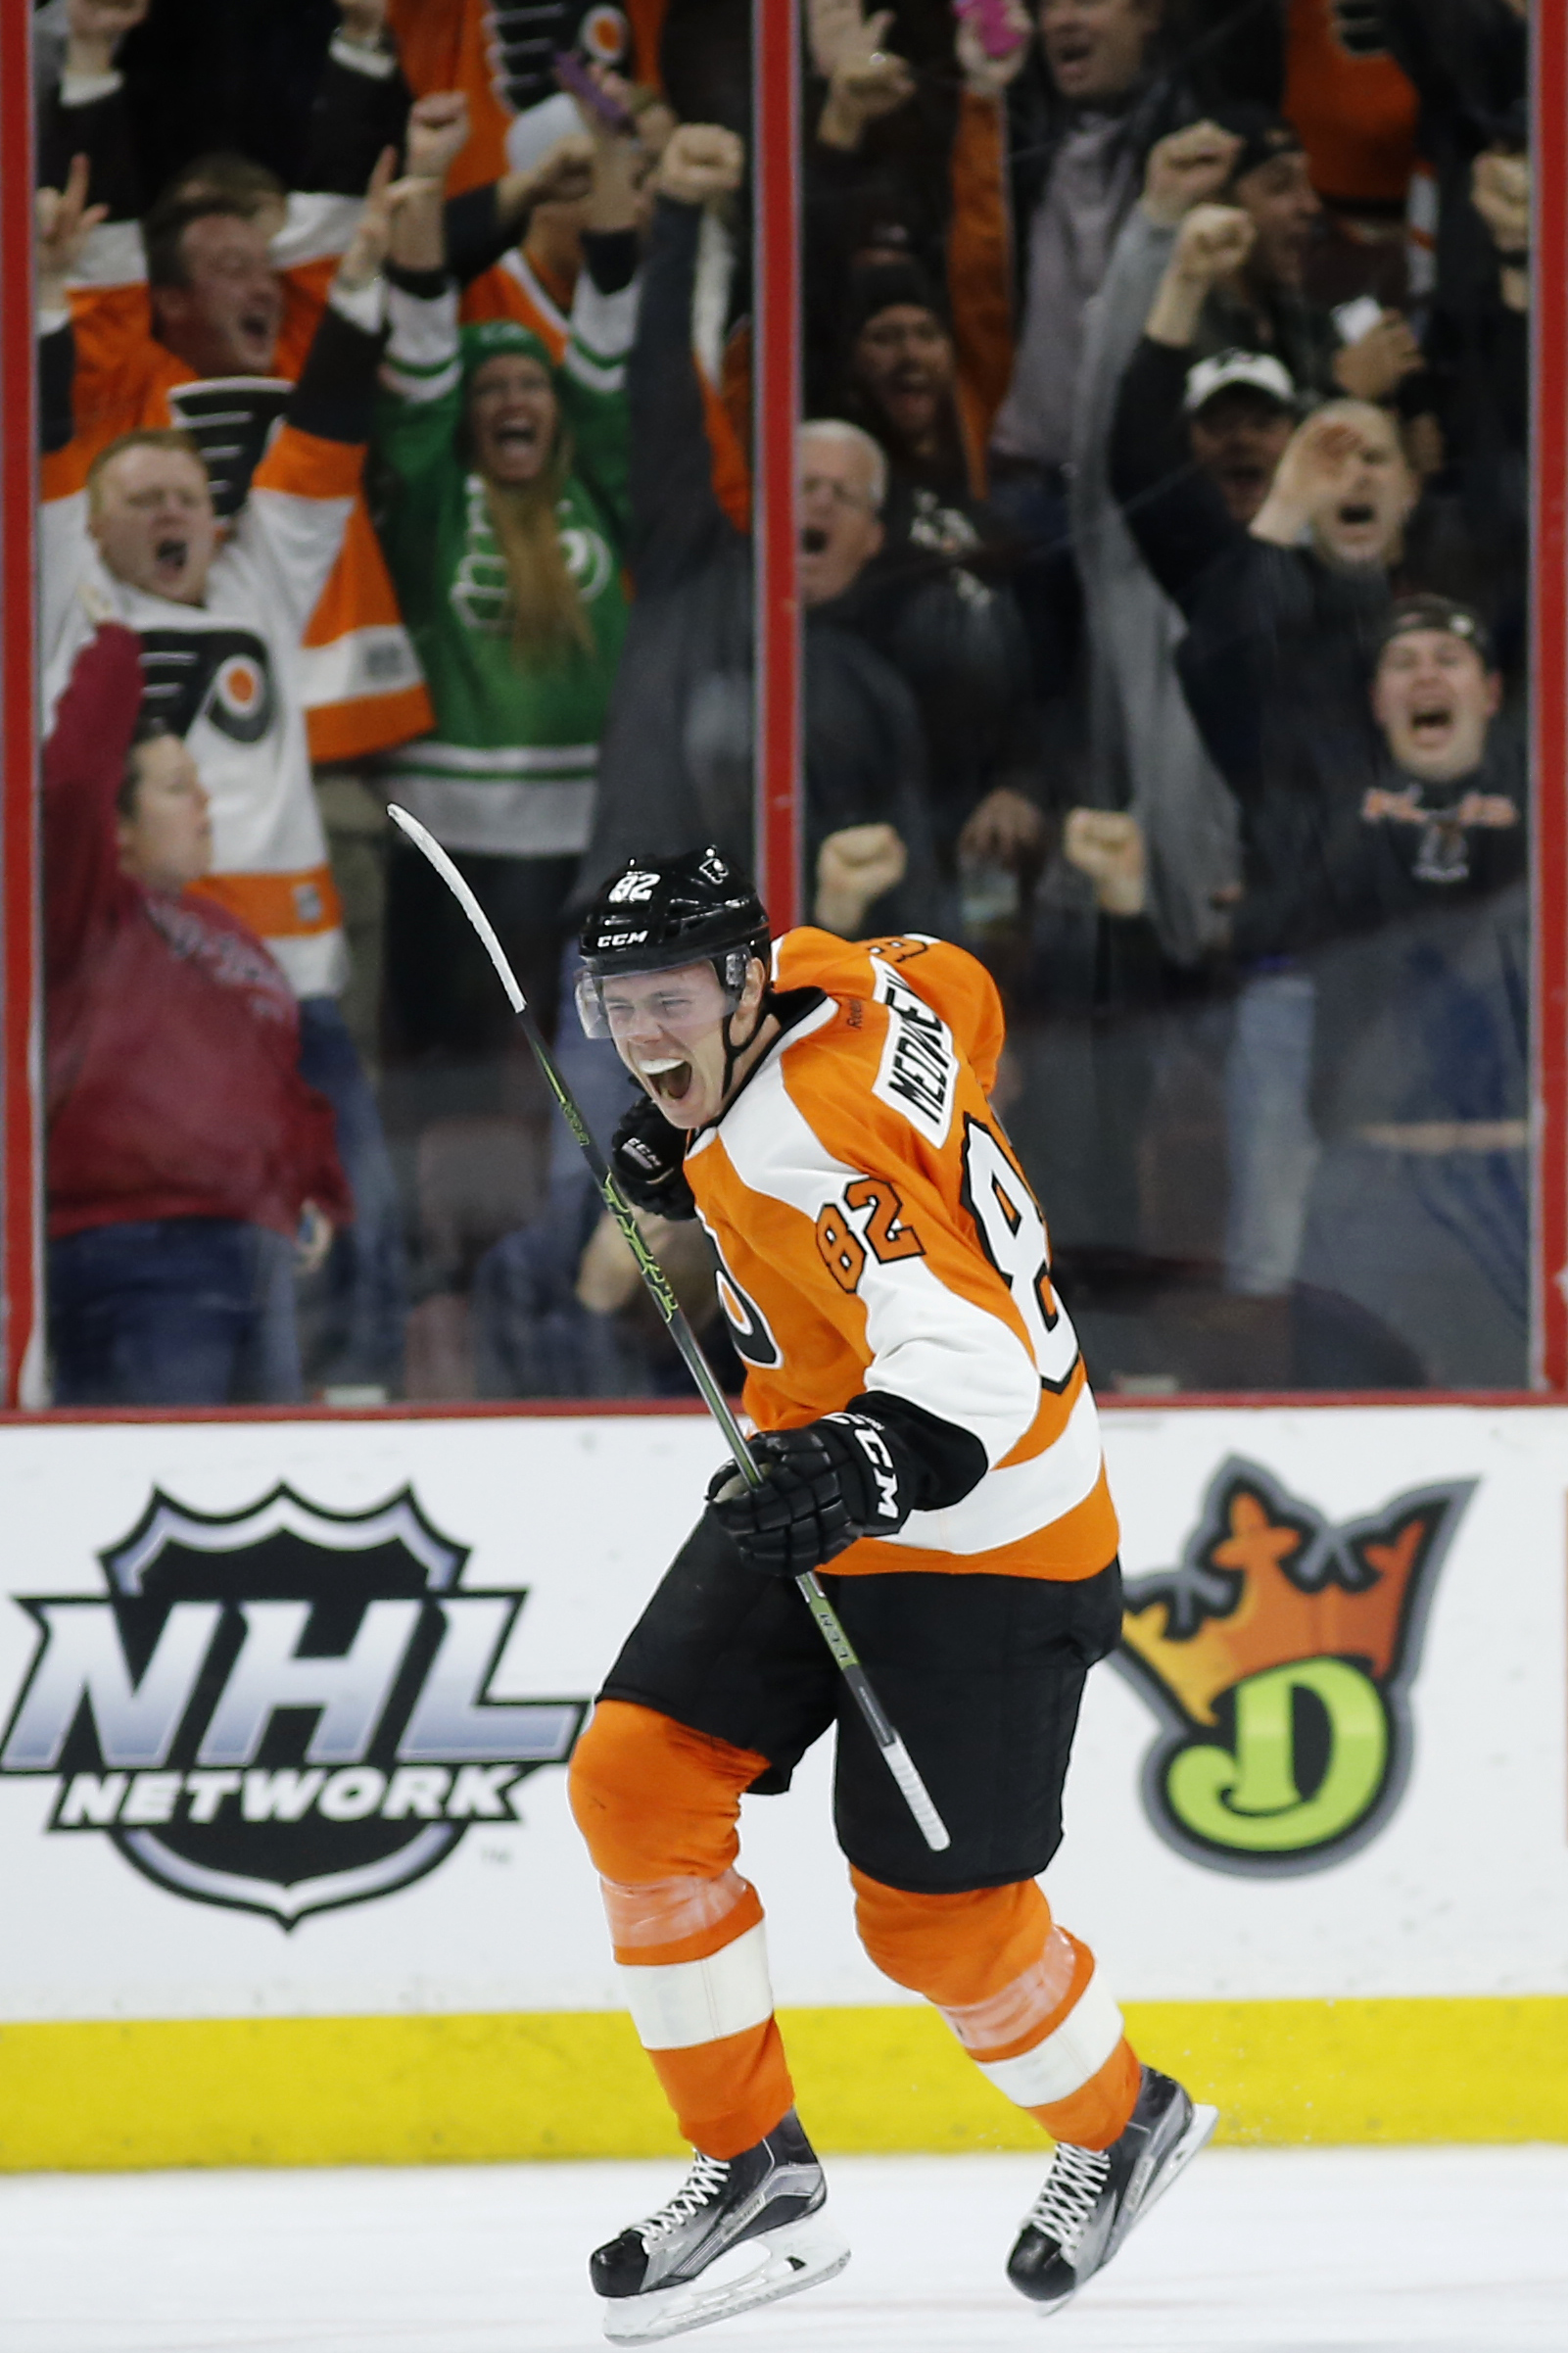 Philadelphia Flyers' Evgeny Medvedev reacts after scoring the go-ahead goal during the third period of an NHL hockey game against the St. Louis Blues, Monday, Dec. 21, 2015, in Philadelphia. Philadelphia won 4-3. (AP Photo/Matt Slocum)